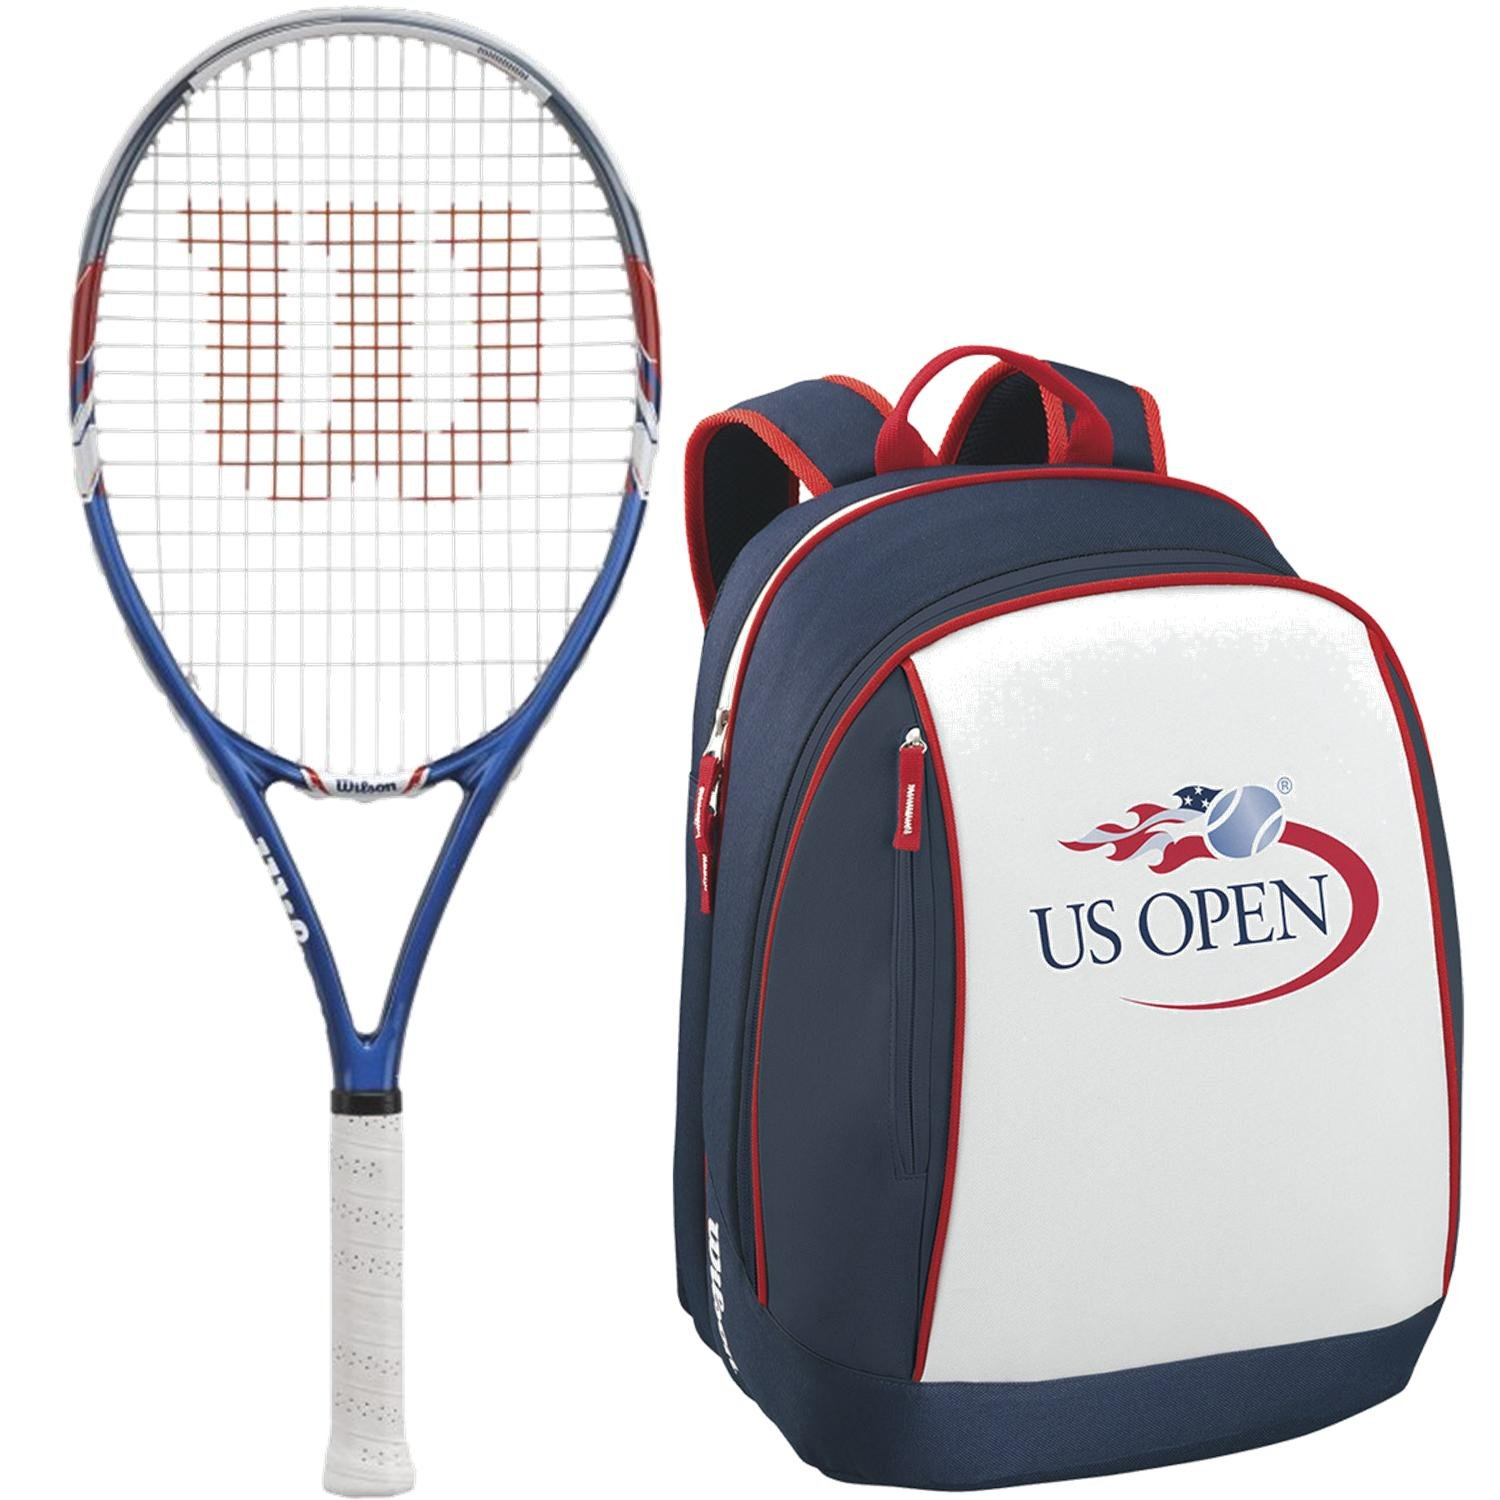 Wilson US Open Pre-Strung Tennis Racquet (Grip Size 4 1/4) bundled with a Limited Edition US Open Backpack